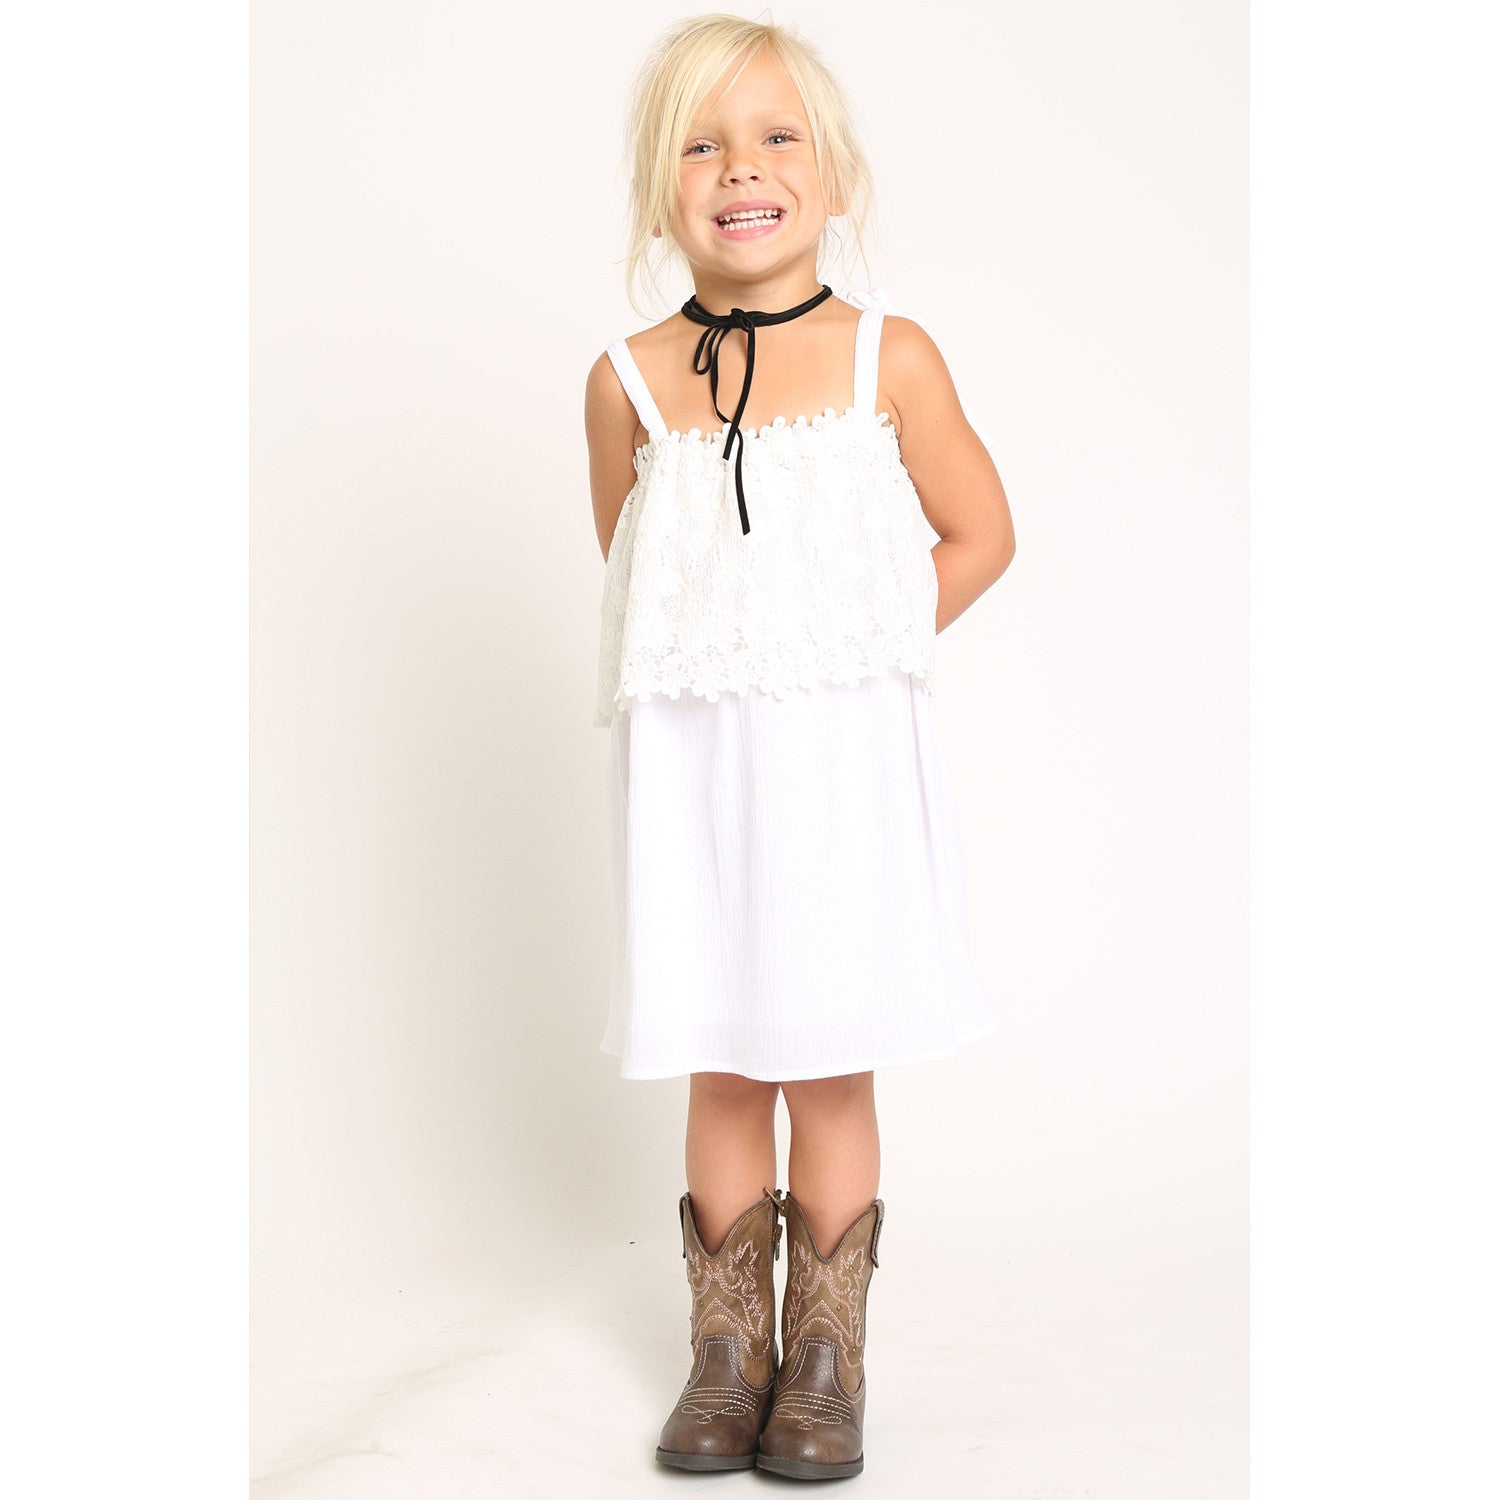 Scallop Lace Panel Dress w/ Tie Shoulder Strap for Girls